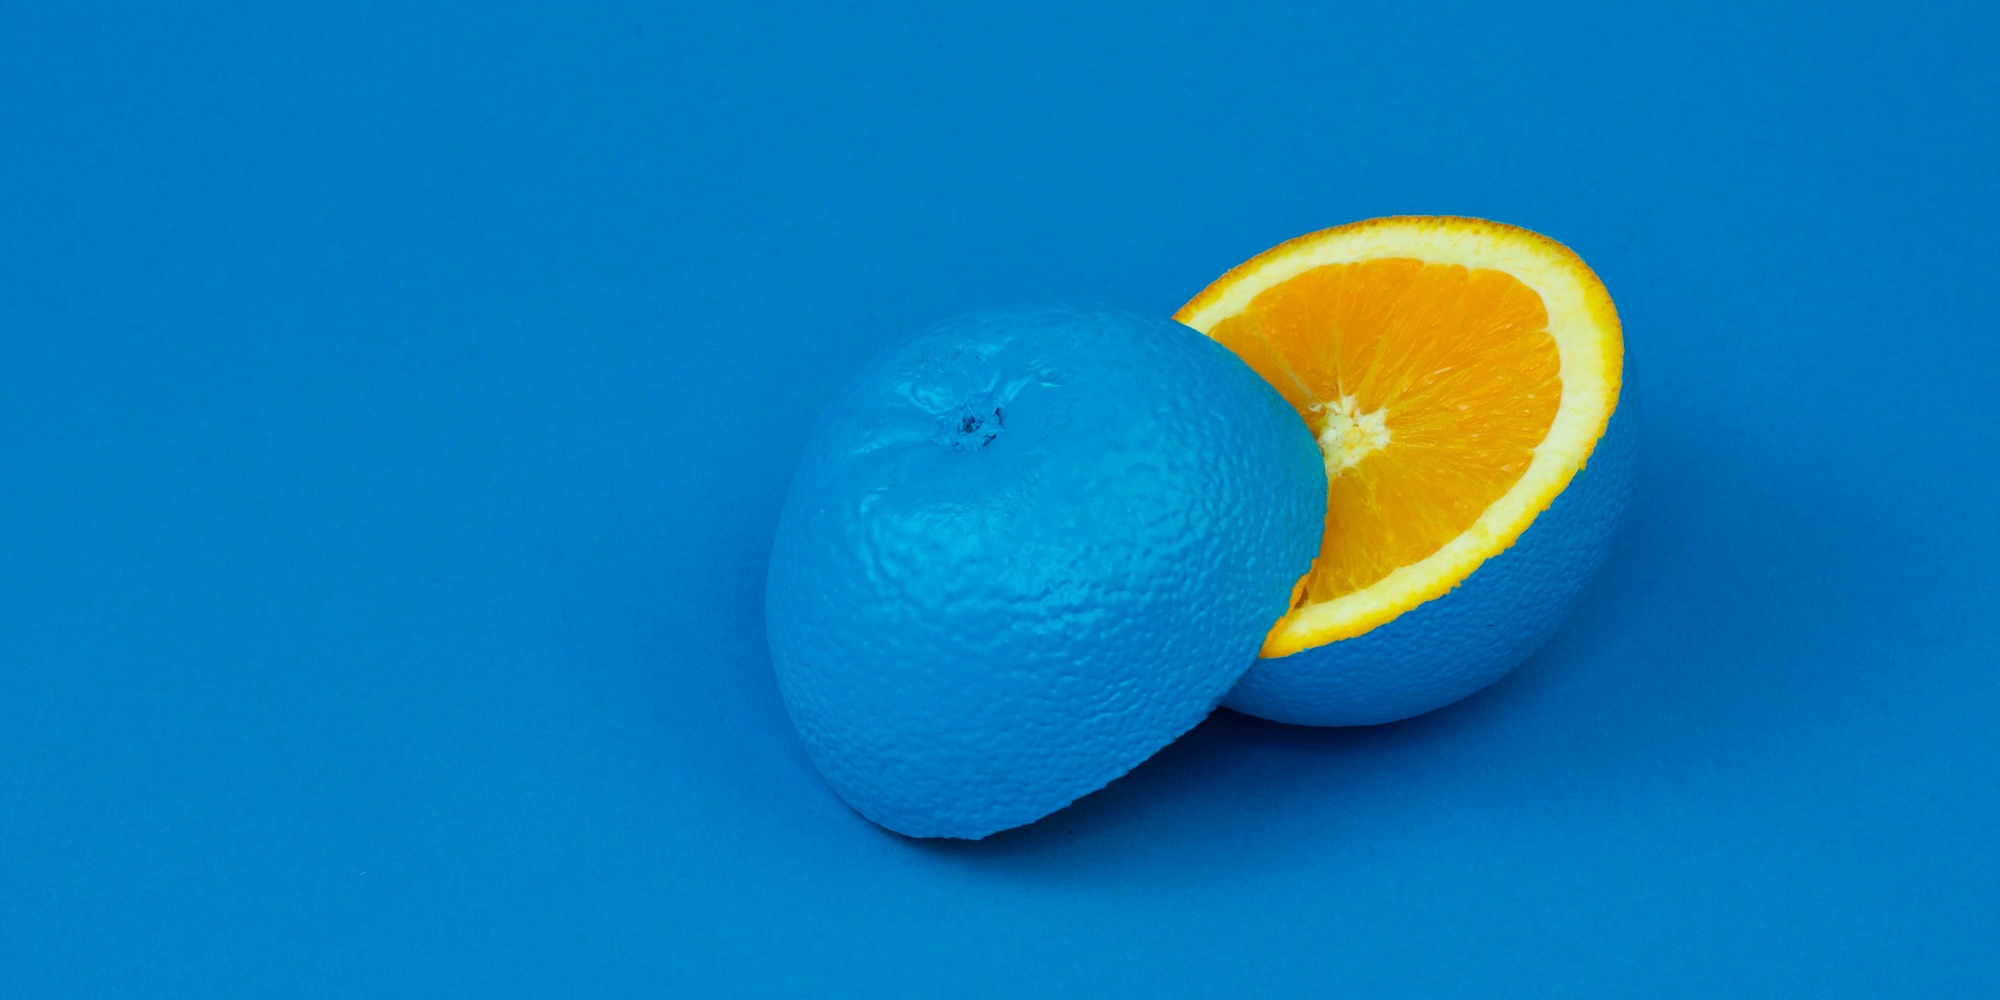 Picture of a orange painted blue cut open showing the orange in the middle